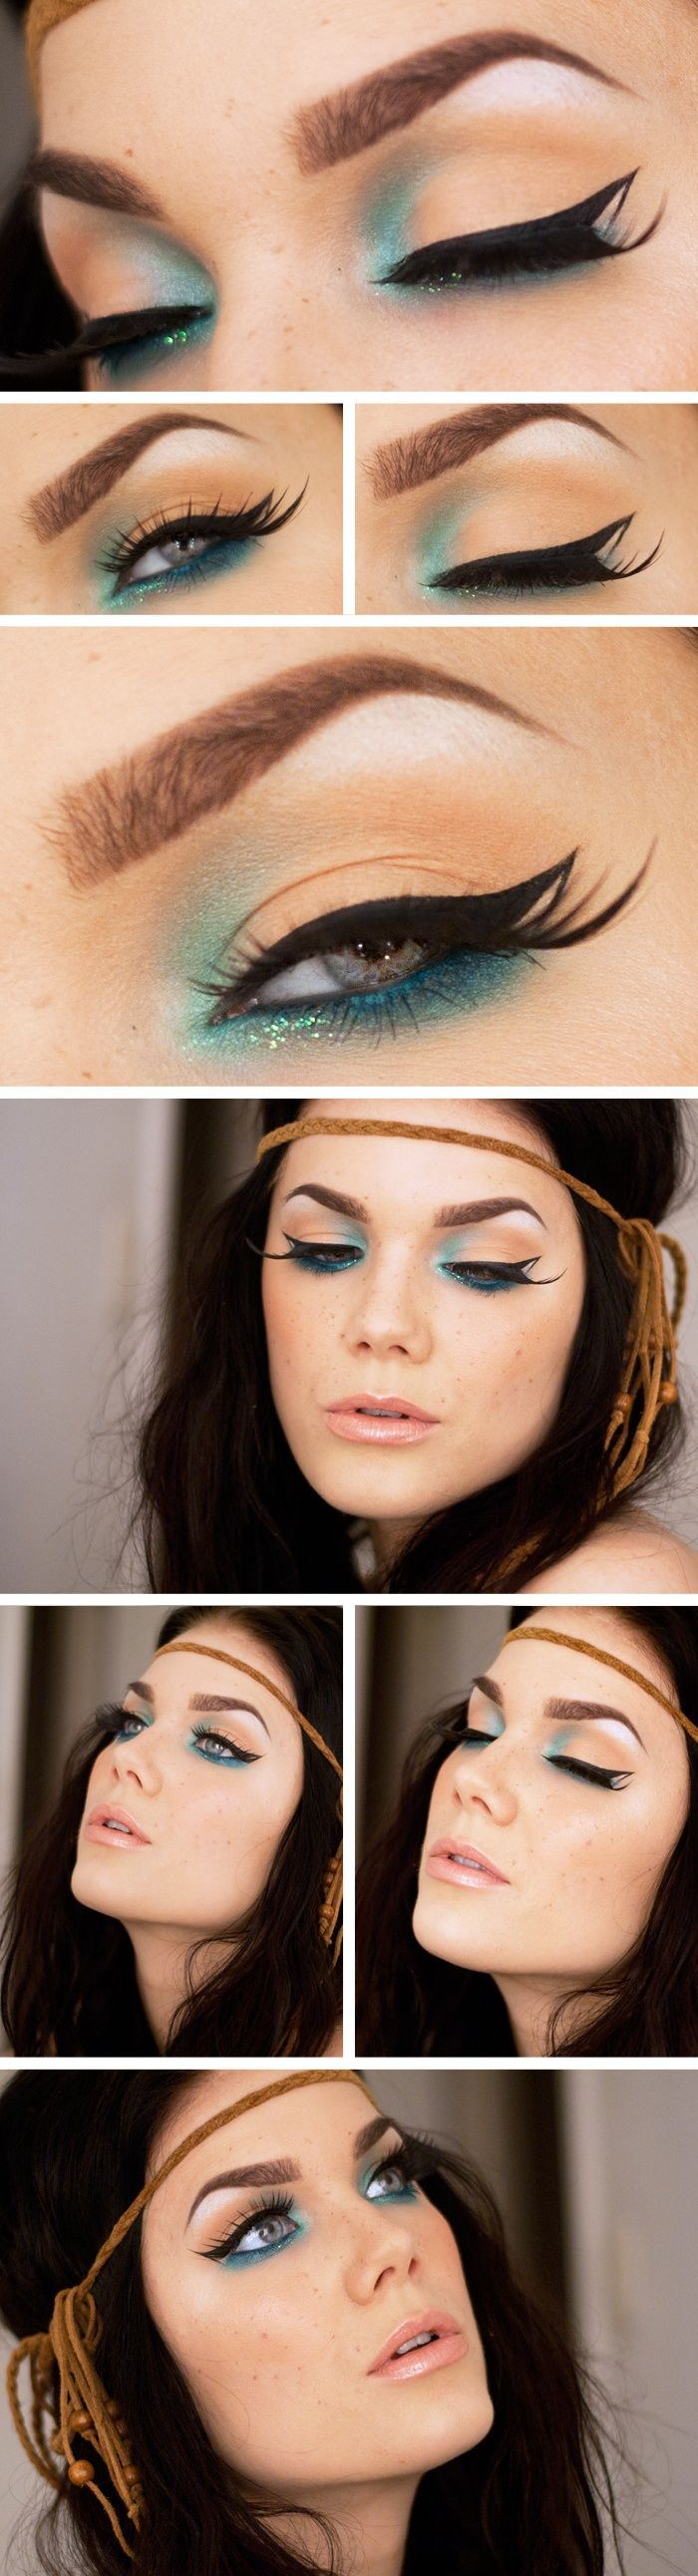 What a great look for that music festival you're going to! The whimsical eyelashes & winged eyeliner with the turquoise highlights. Love it!